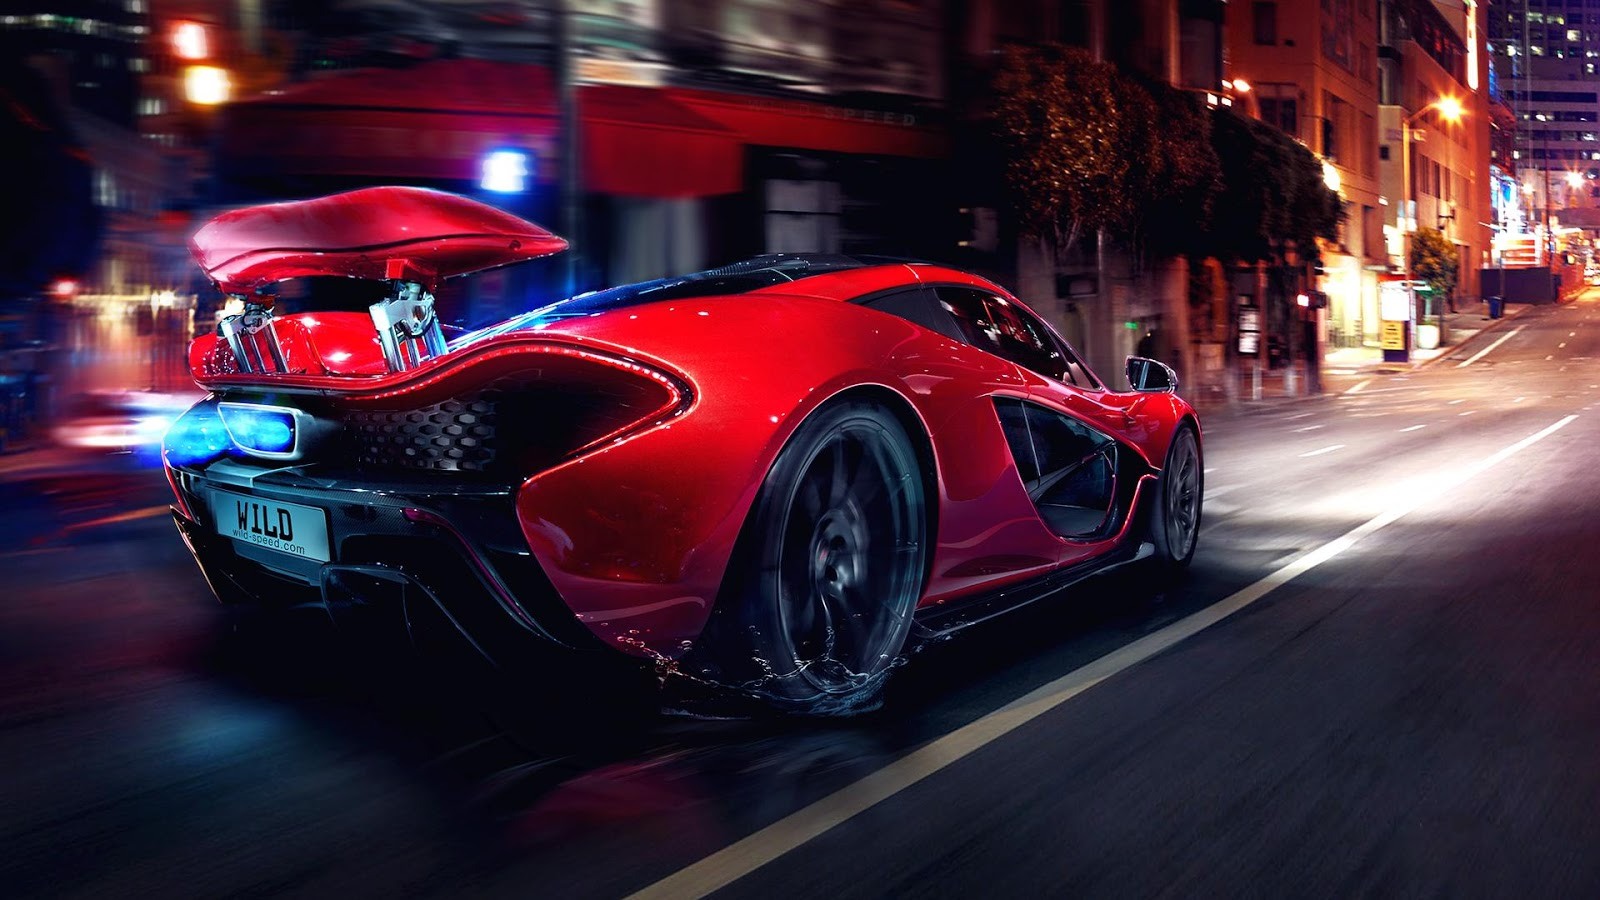 1080p Car Wallpaper Pack 4k Cars Wallpapers High Quality Download Free